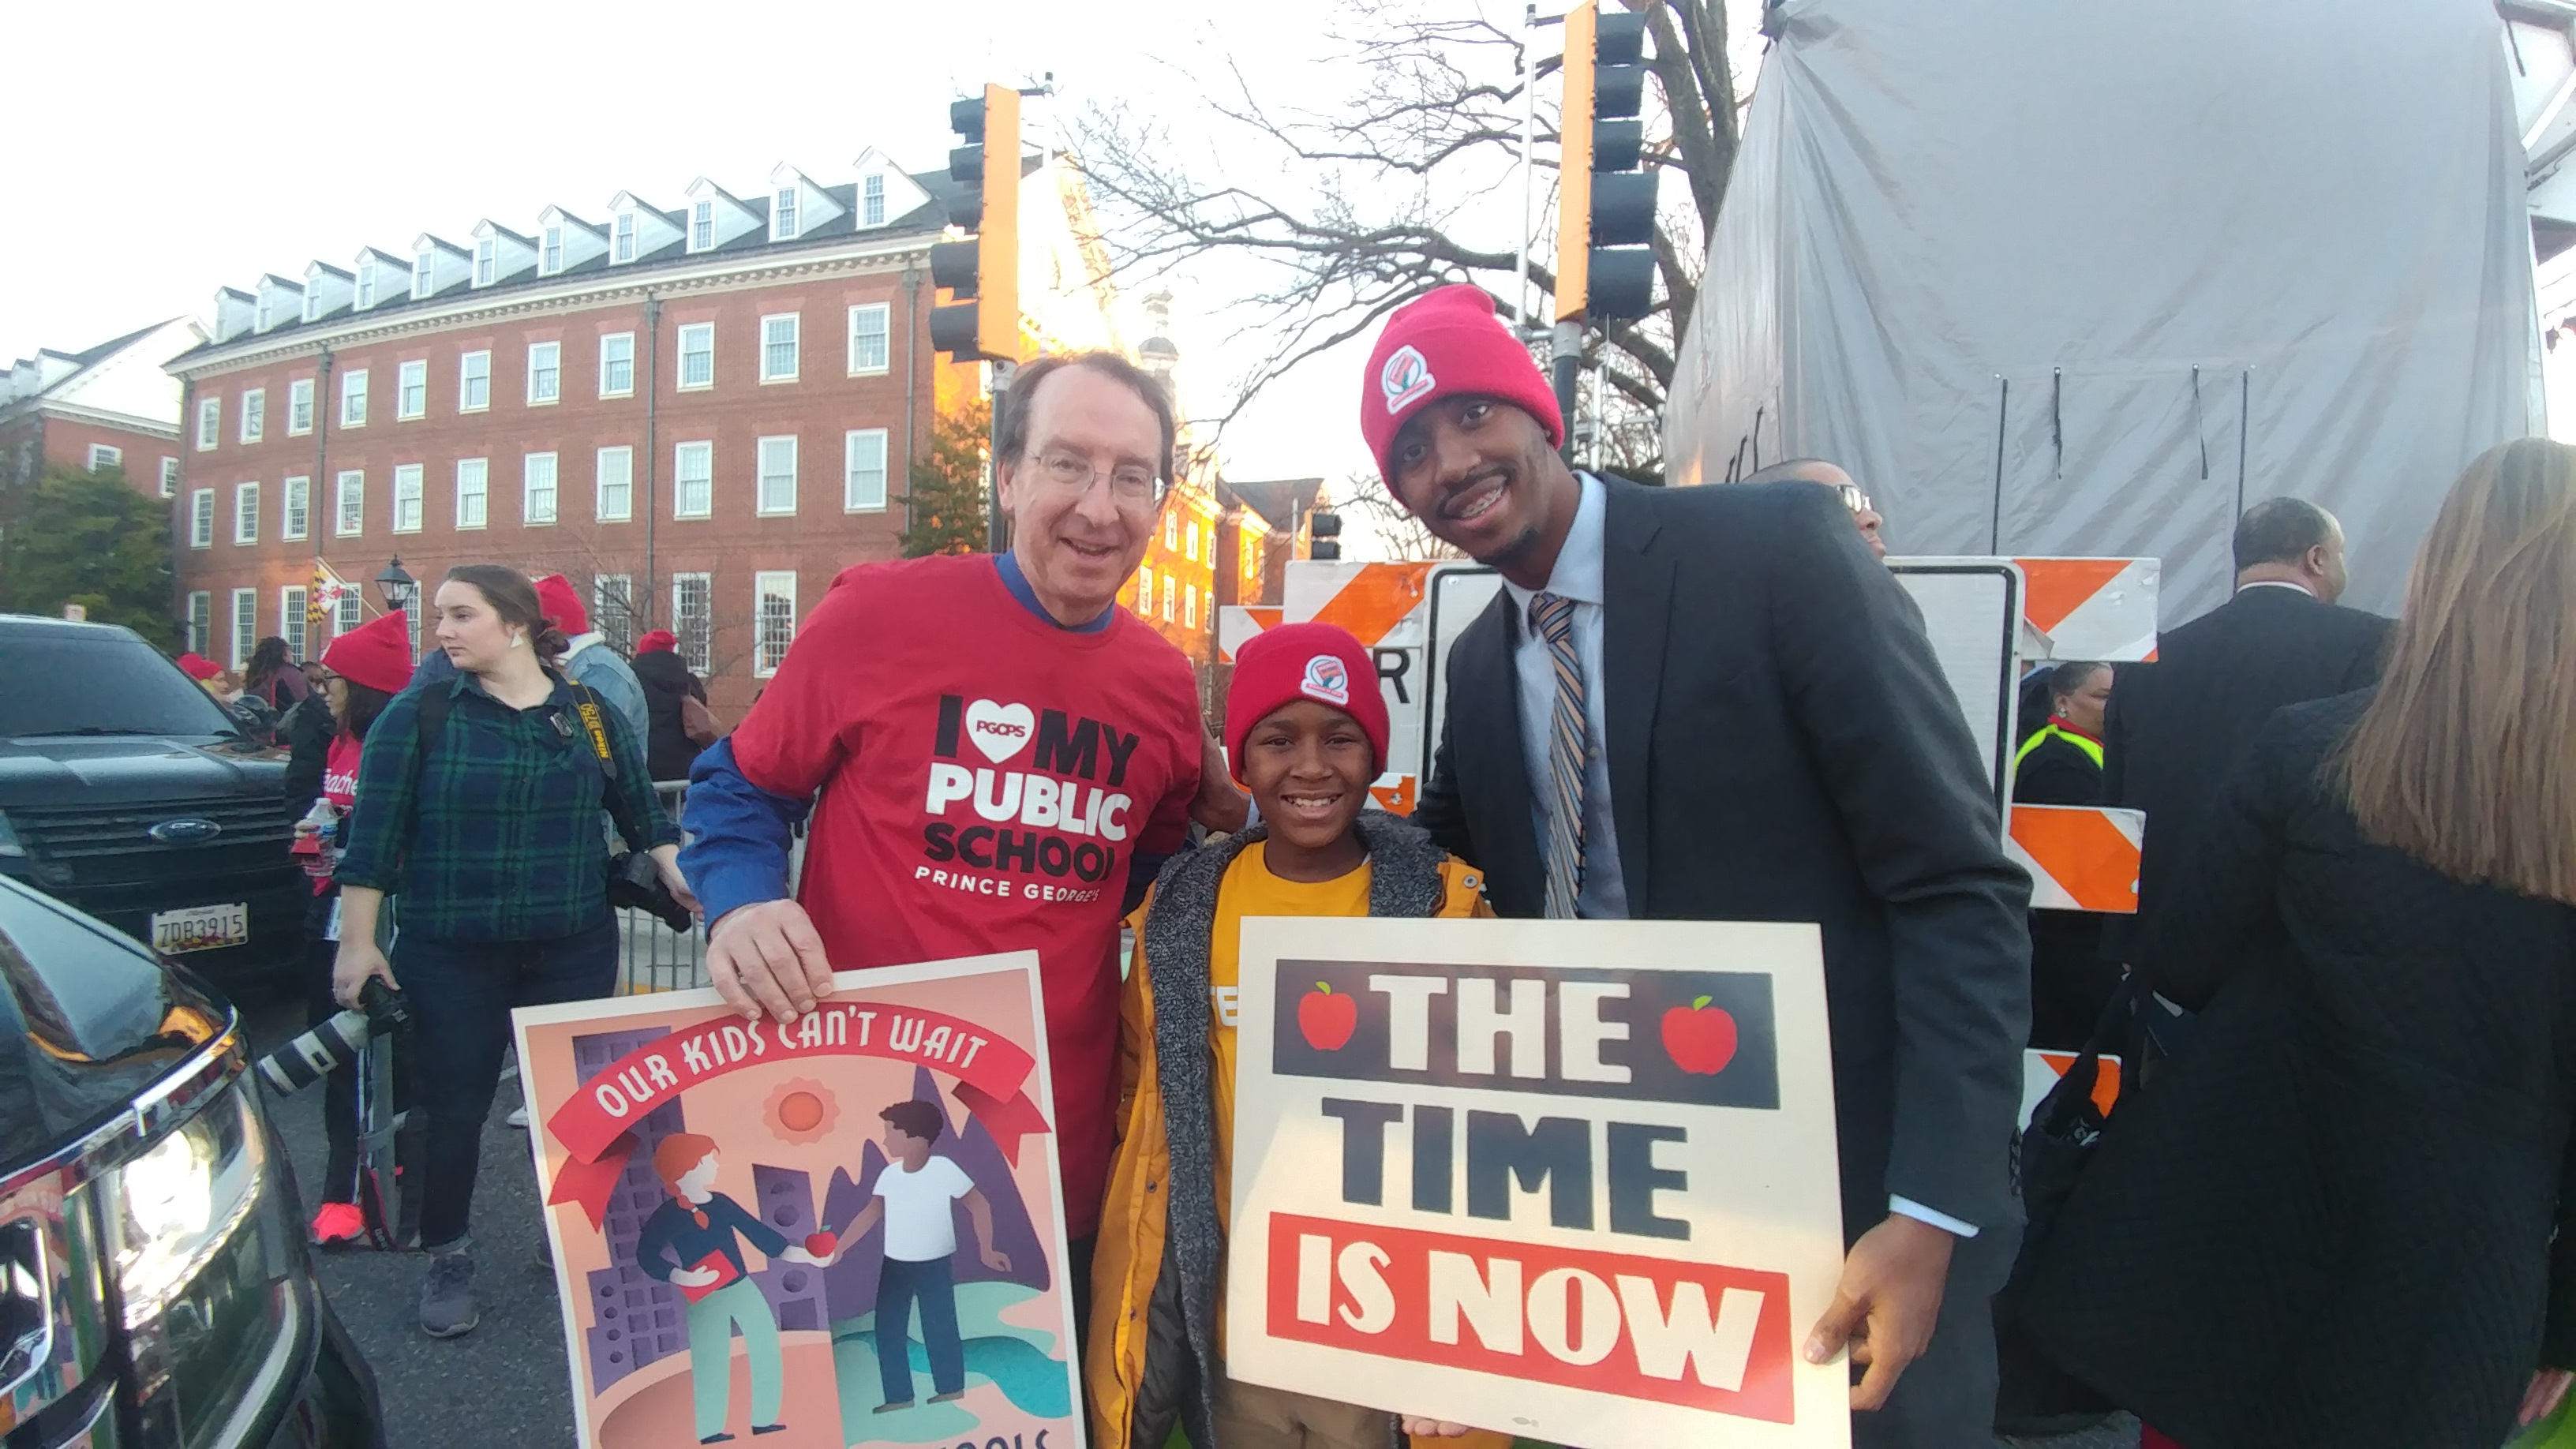 Benjamin Tasket student joins state lawmaker and school board vice chair at March for Our Schools rally in Annapolis, MD